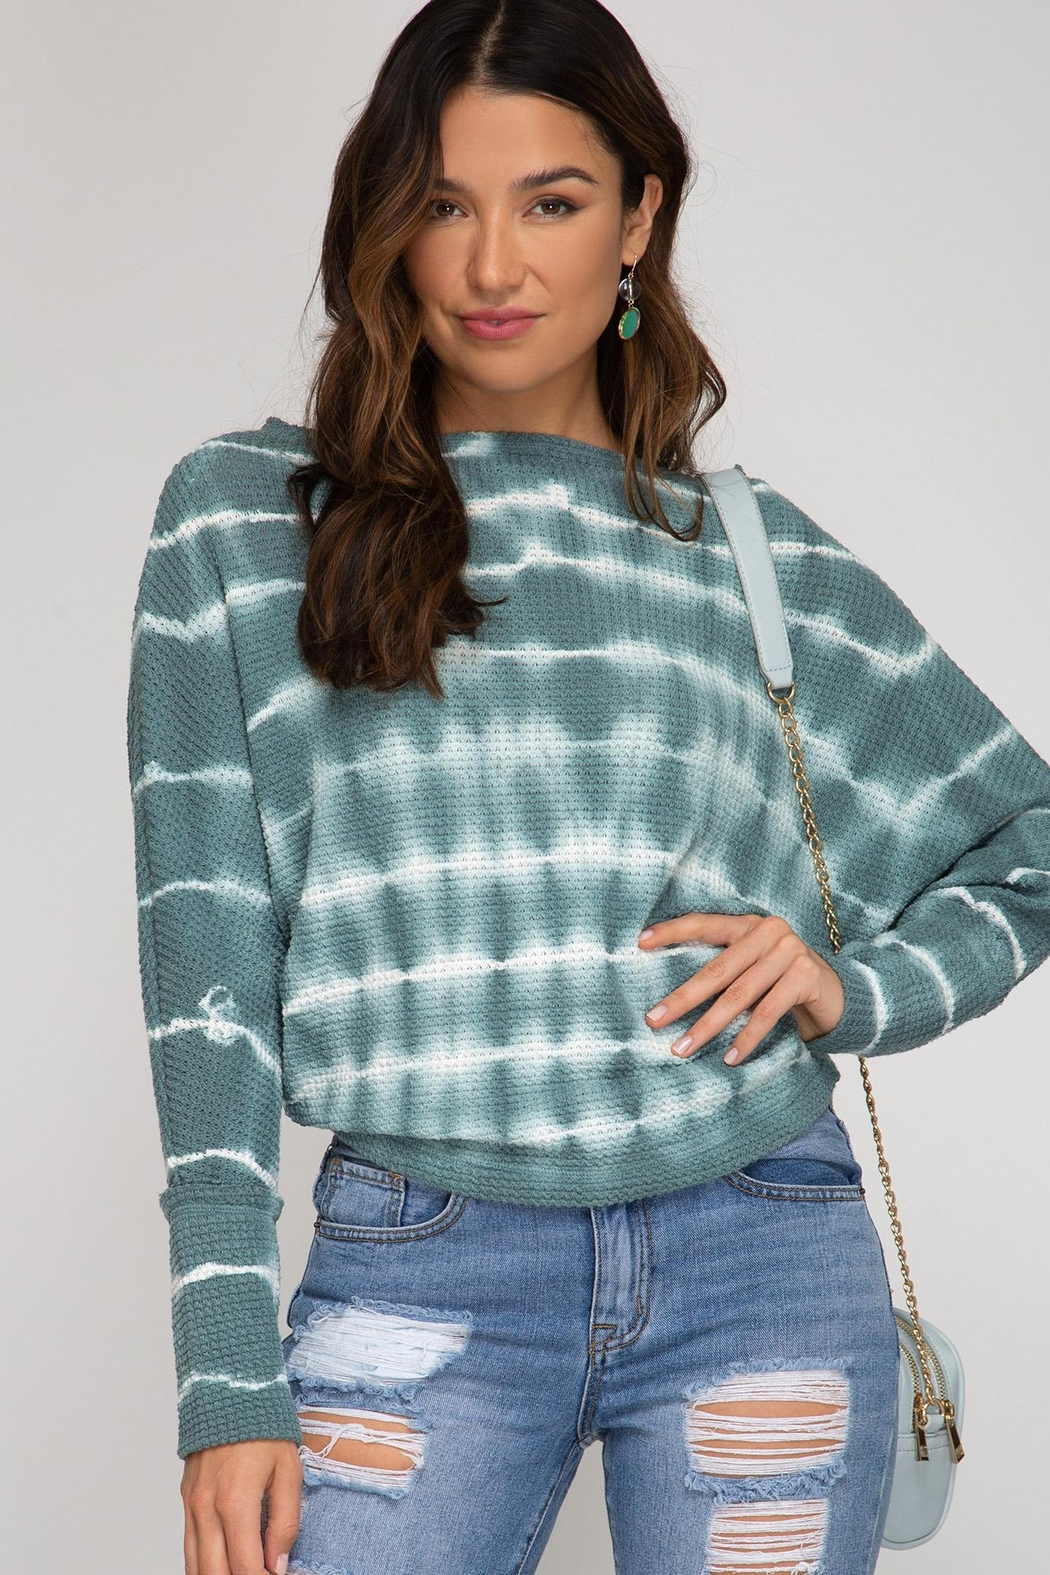 She + Sky Tie Dye Top - Front Cropped Image